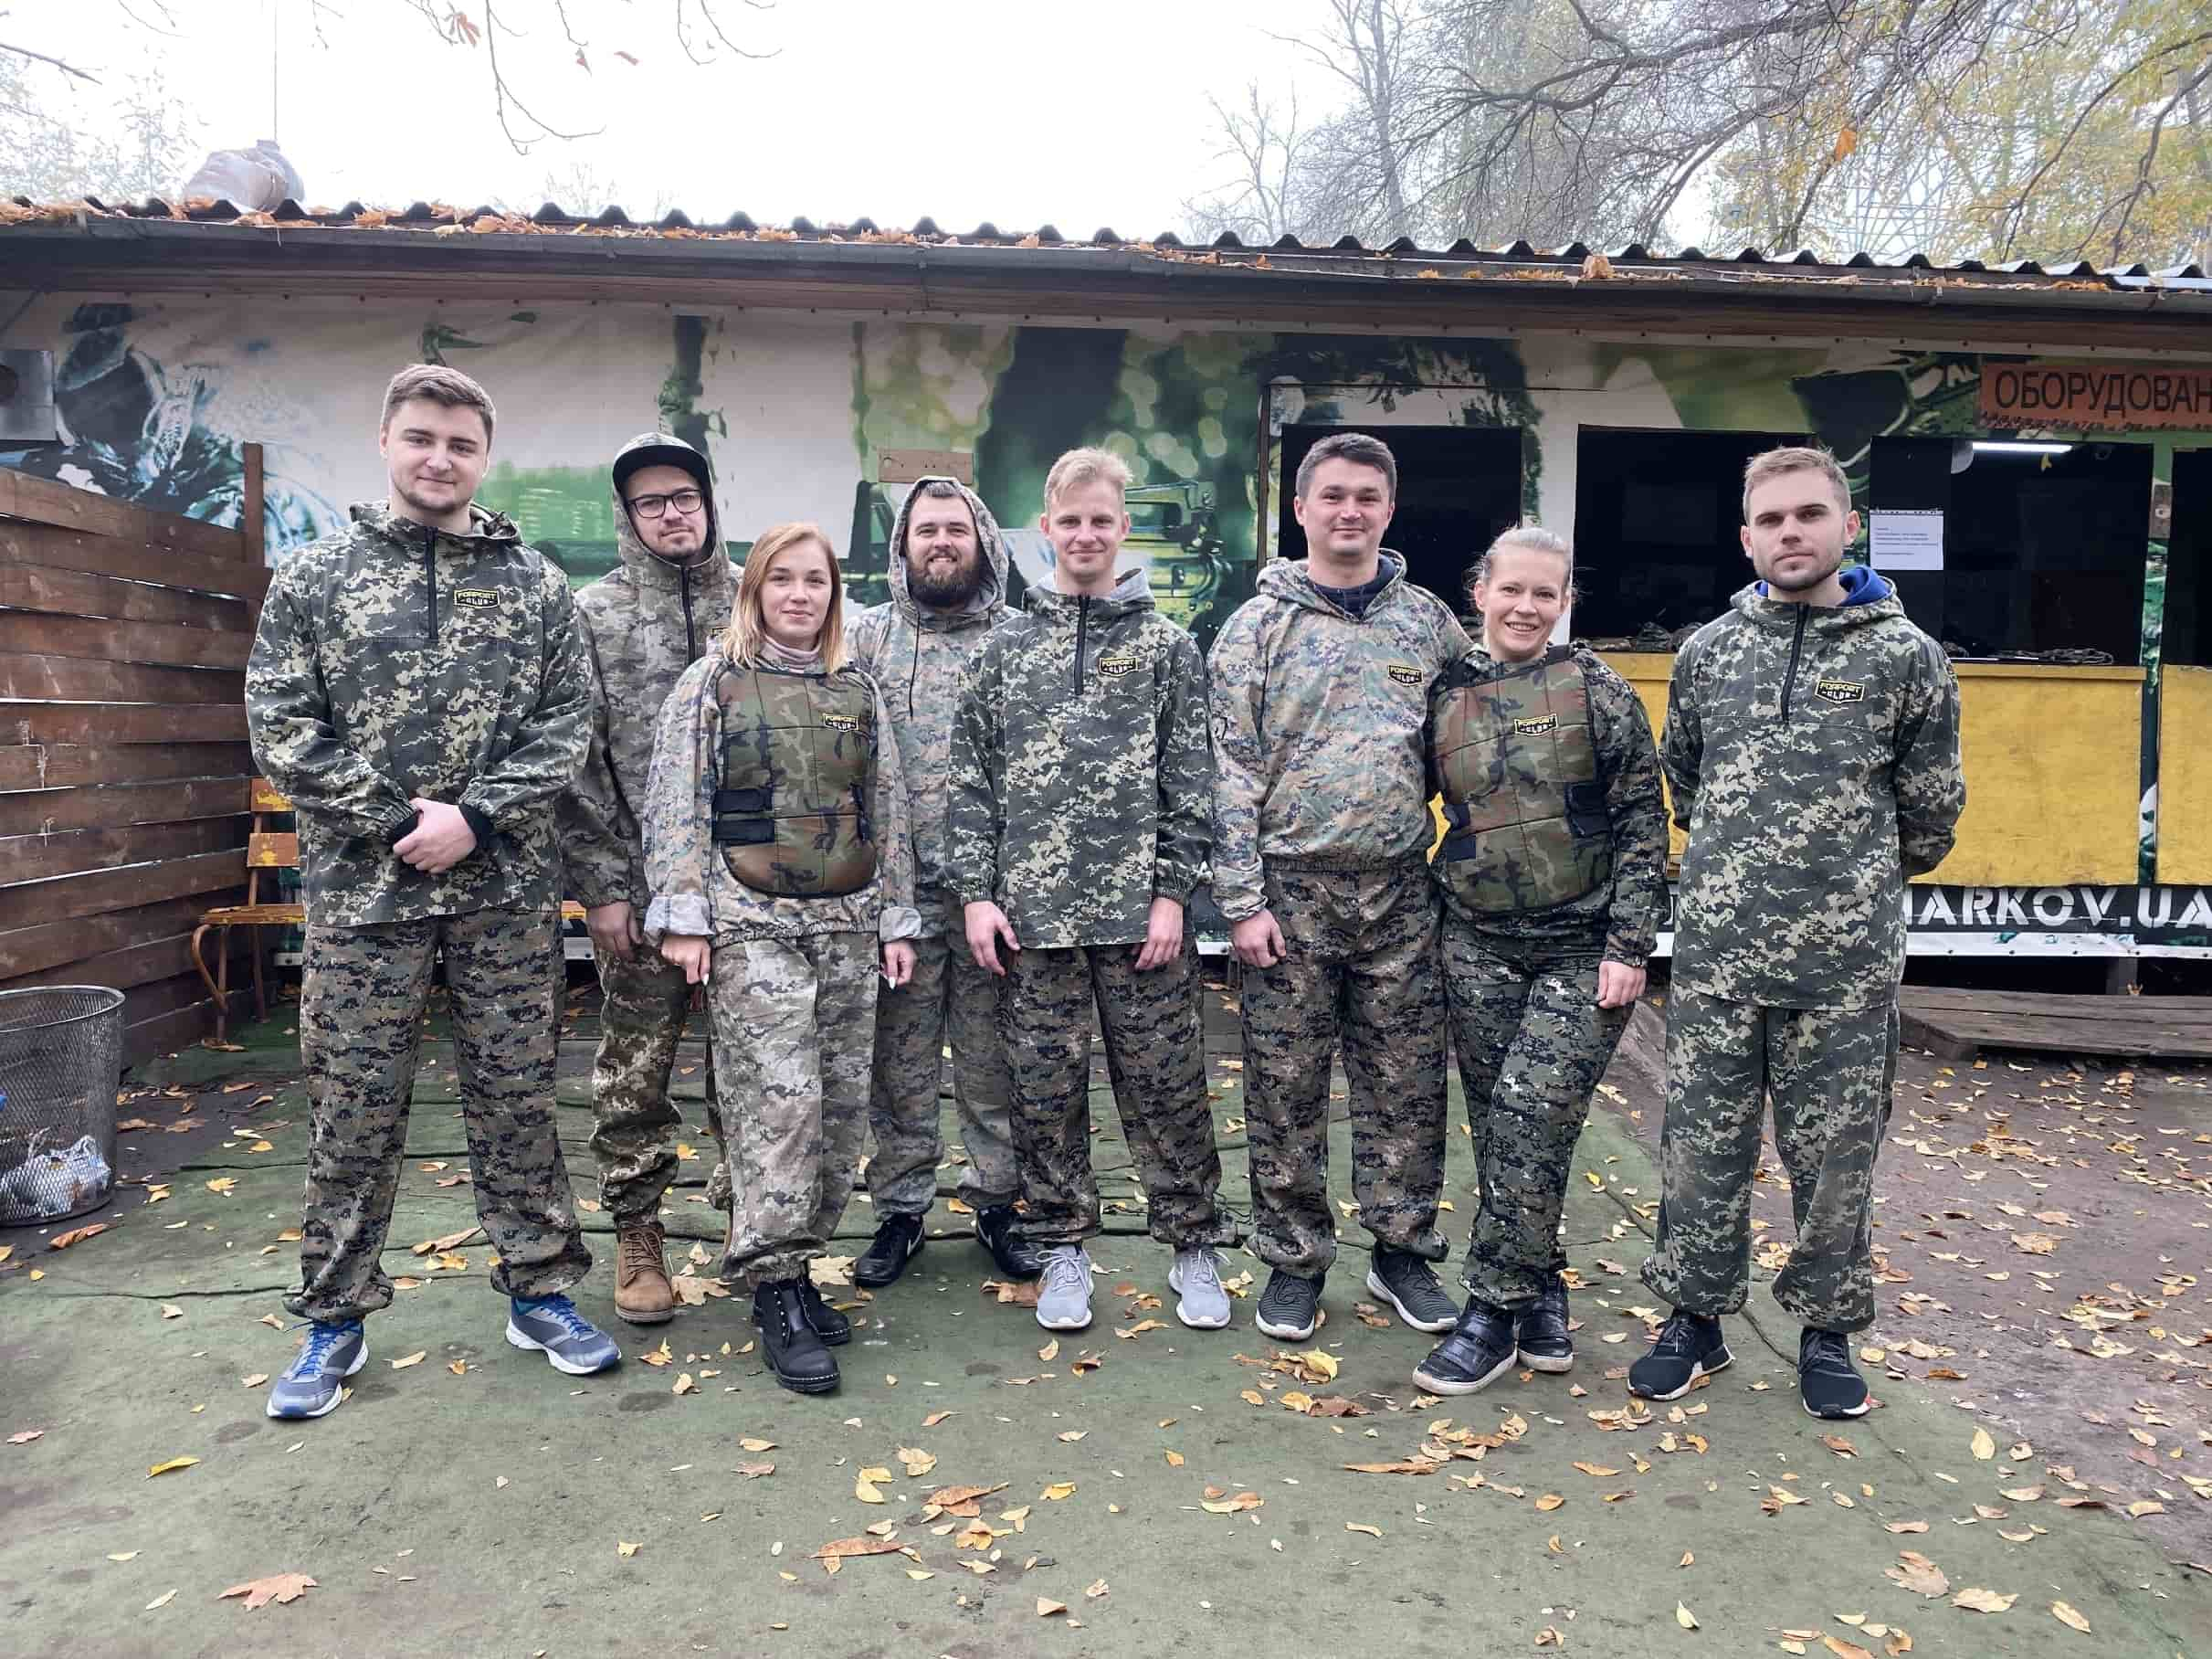 Codica team played paintball